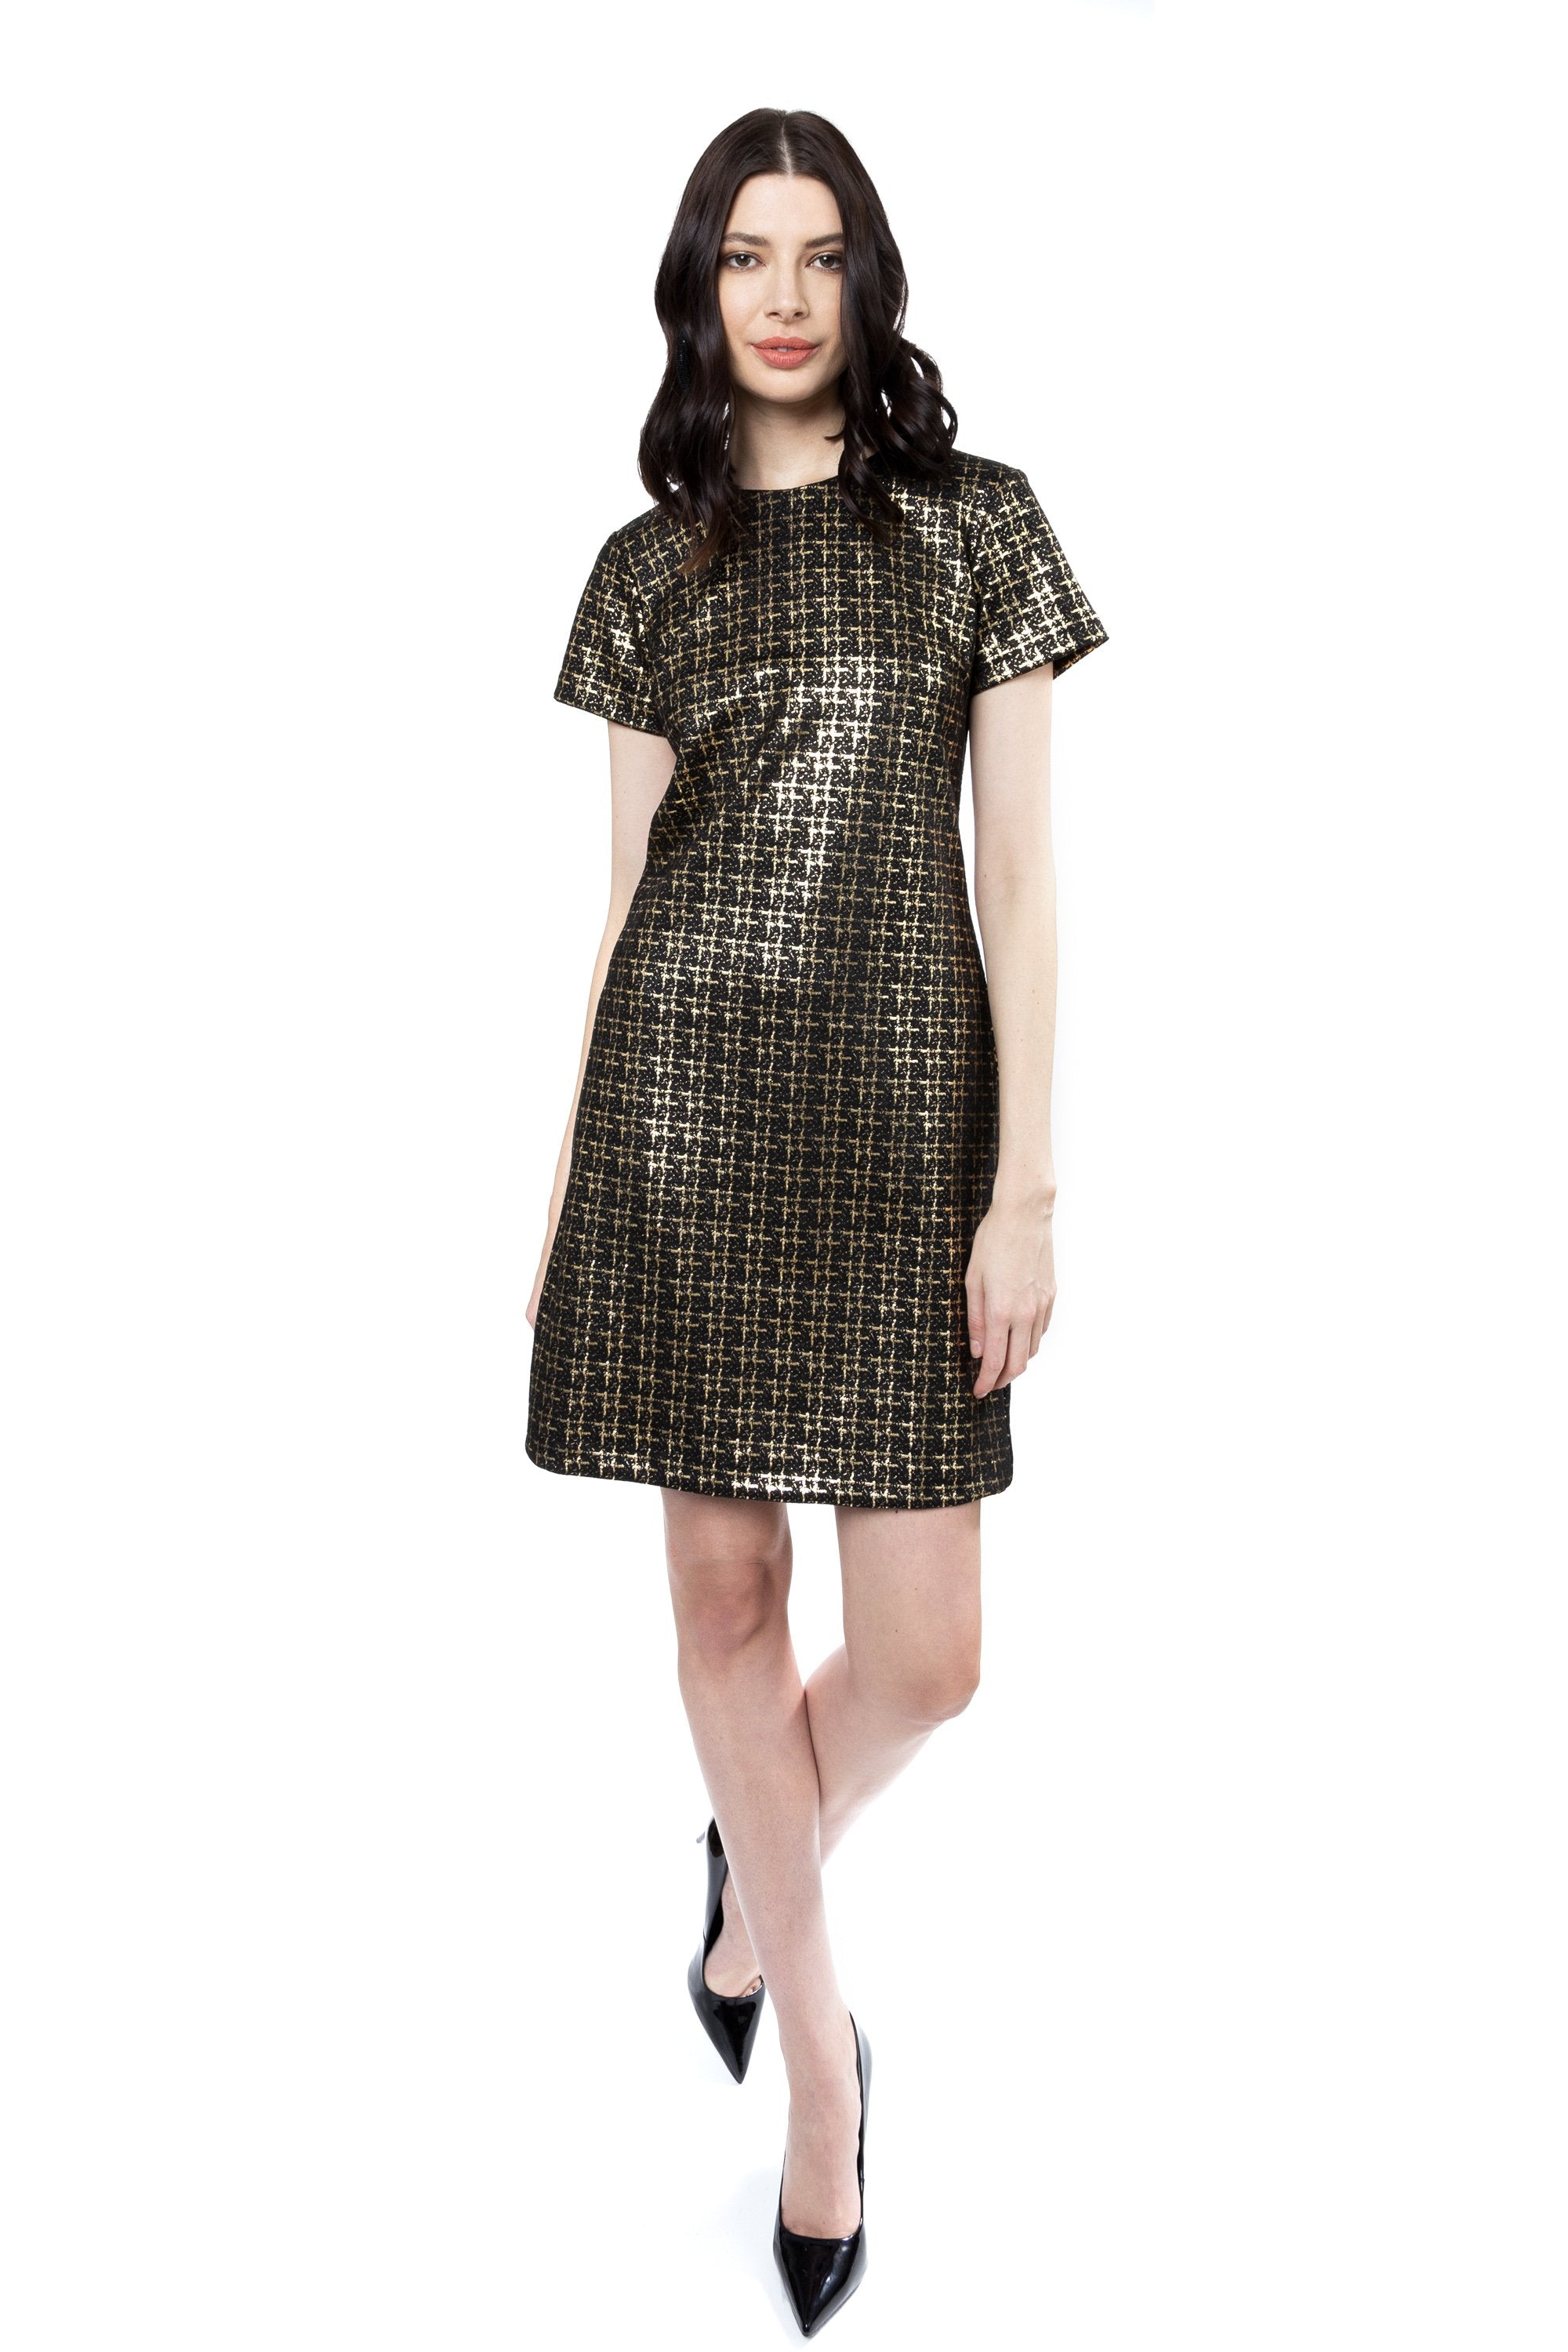 Speckle Sheath Dress in Black